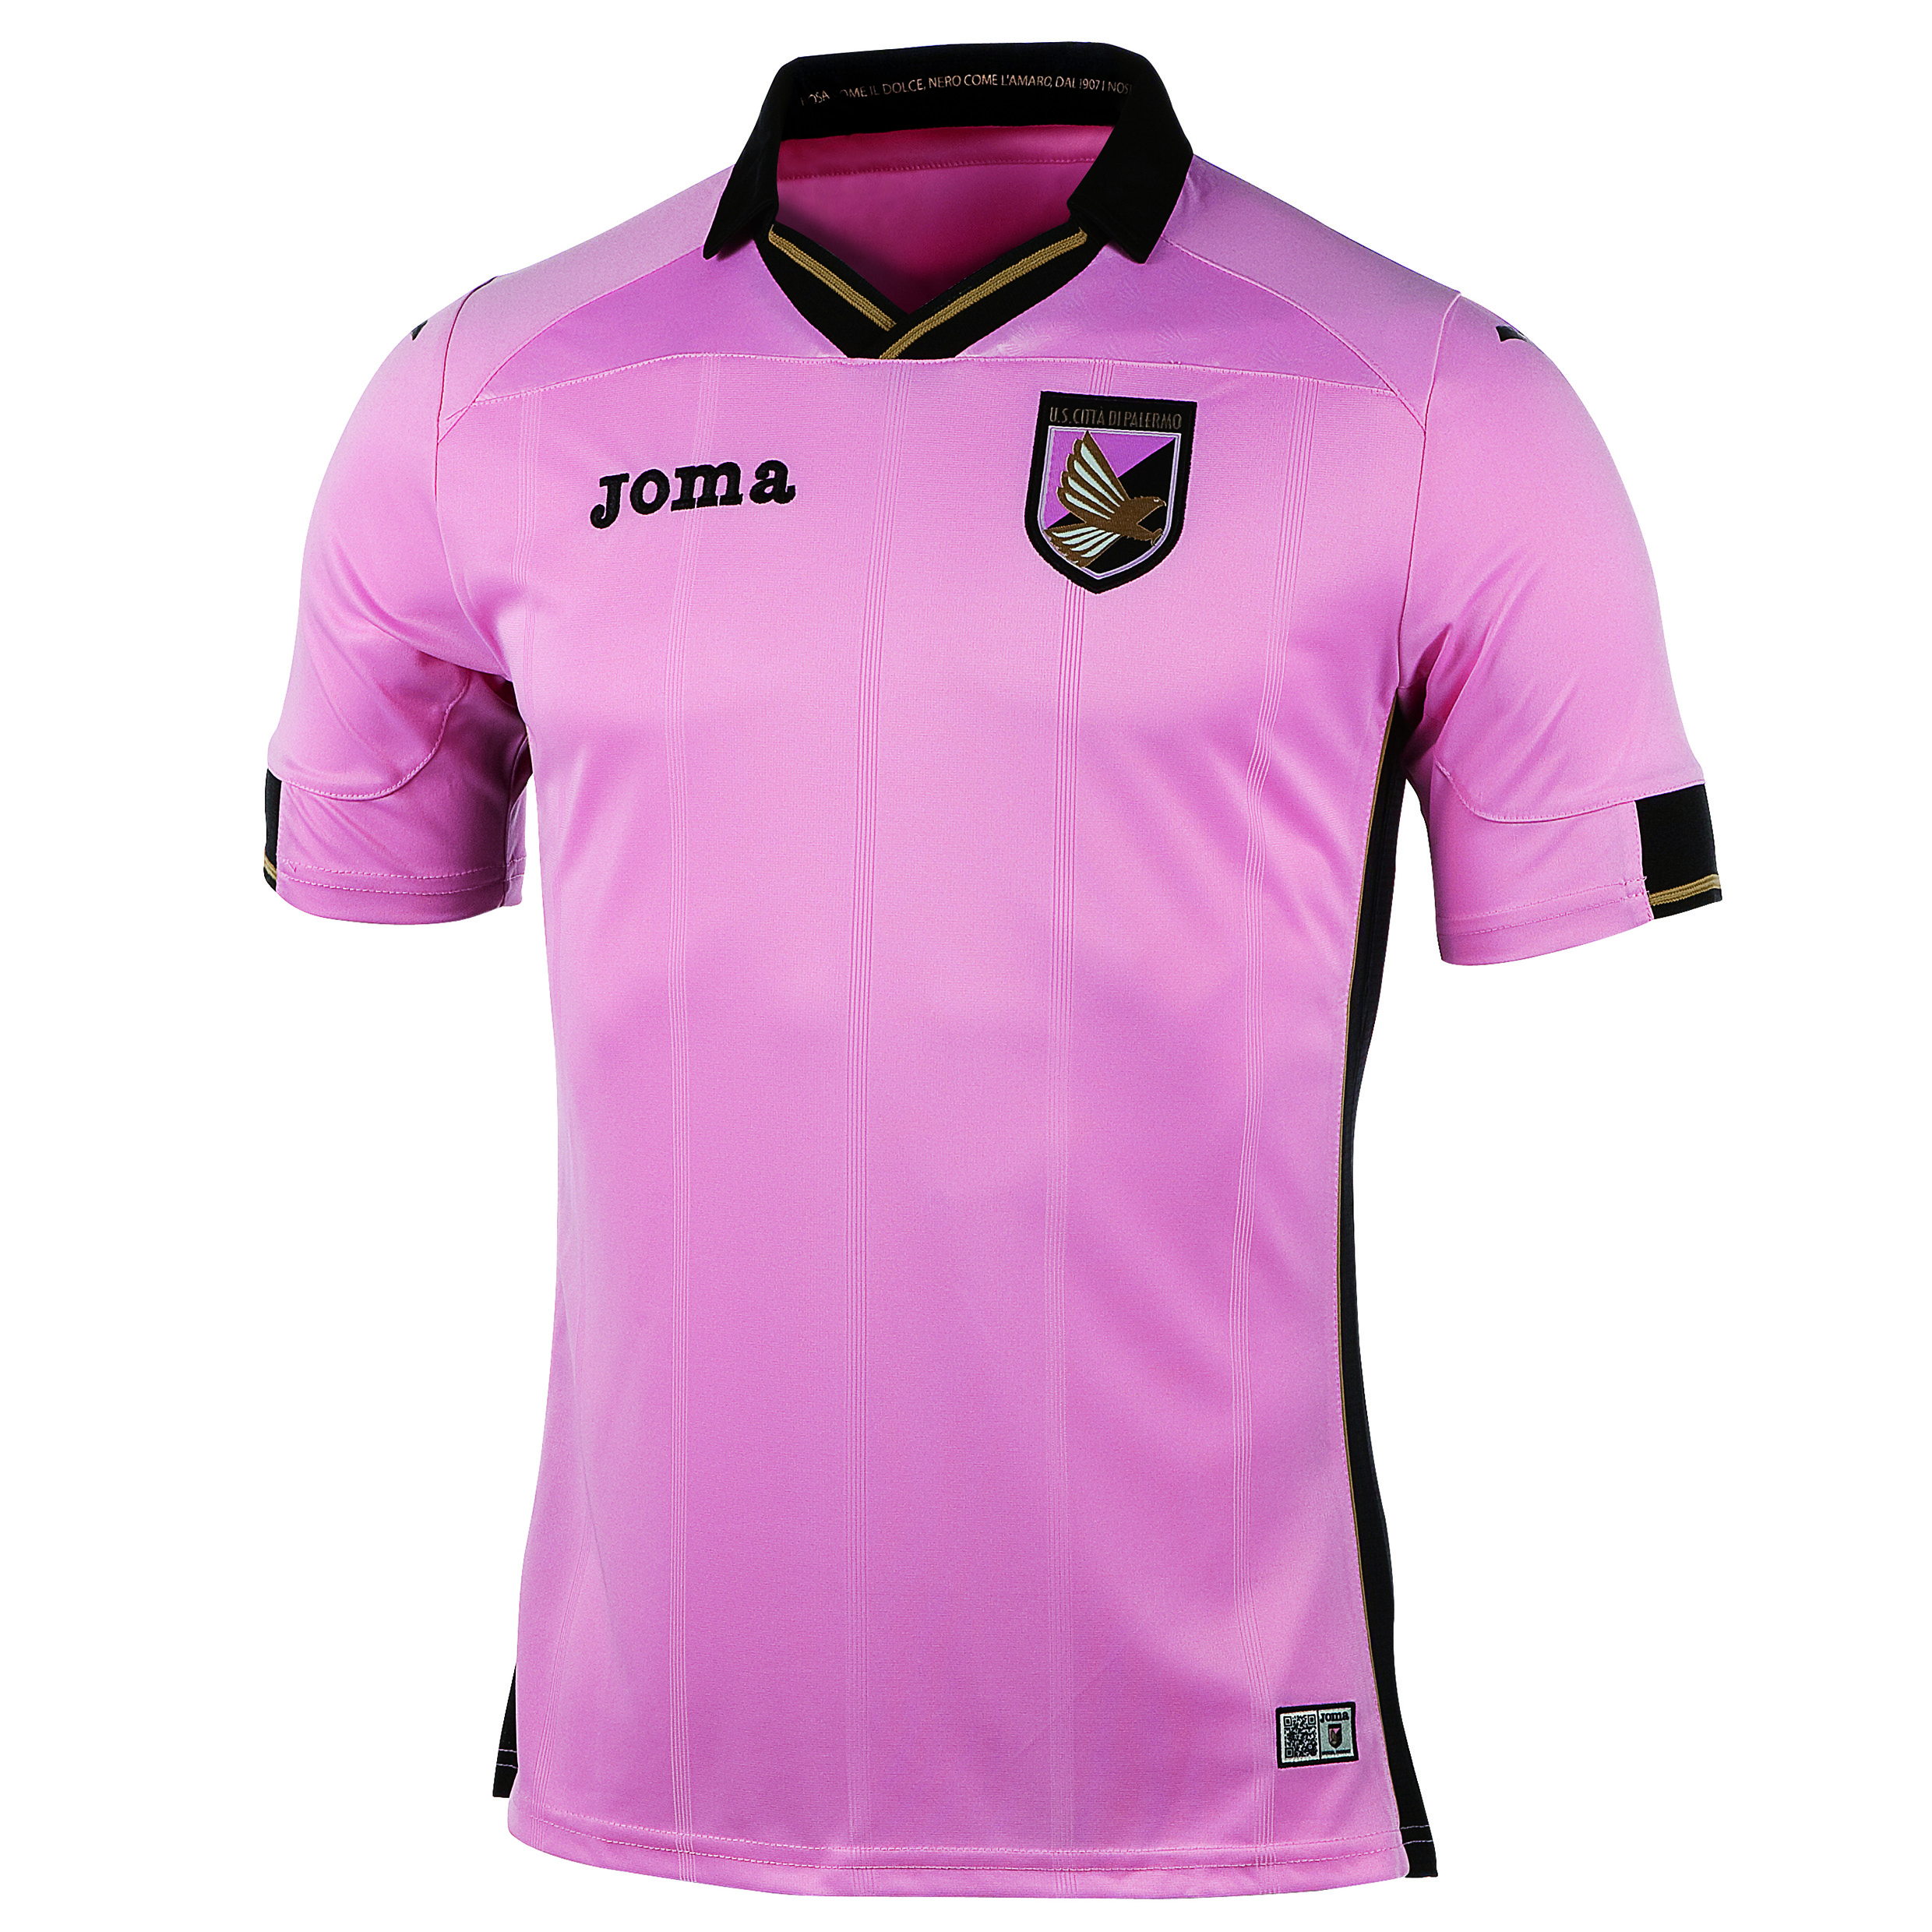 Palermo Home Shirt 2014/15 Black